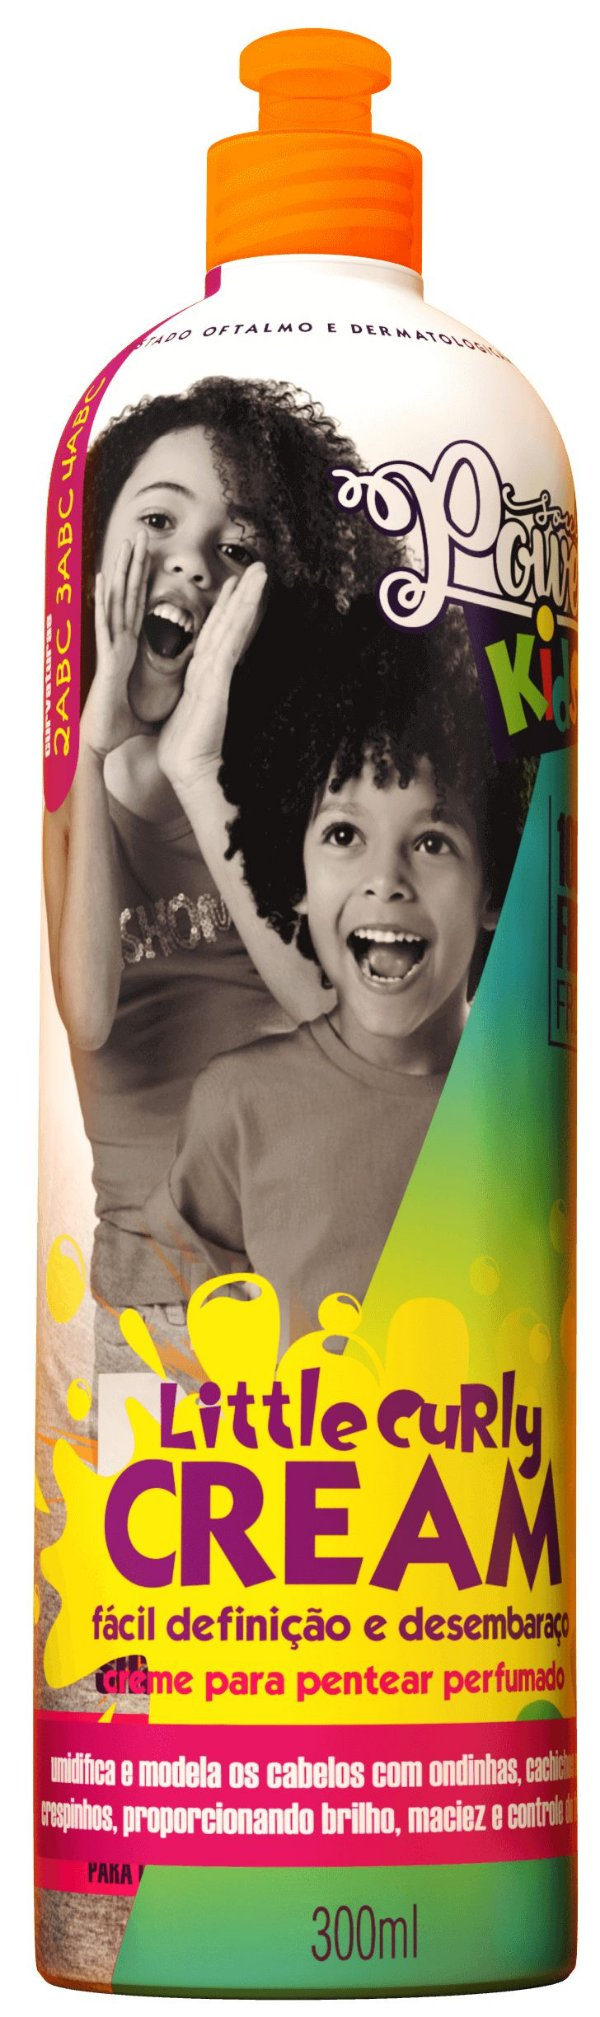 Creme de Pentear Infantil Little Curly Cream 300ml - Soul Power